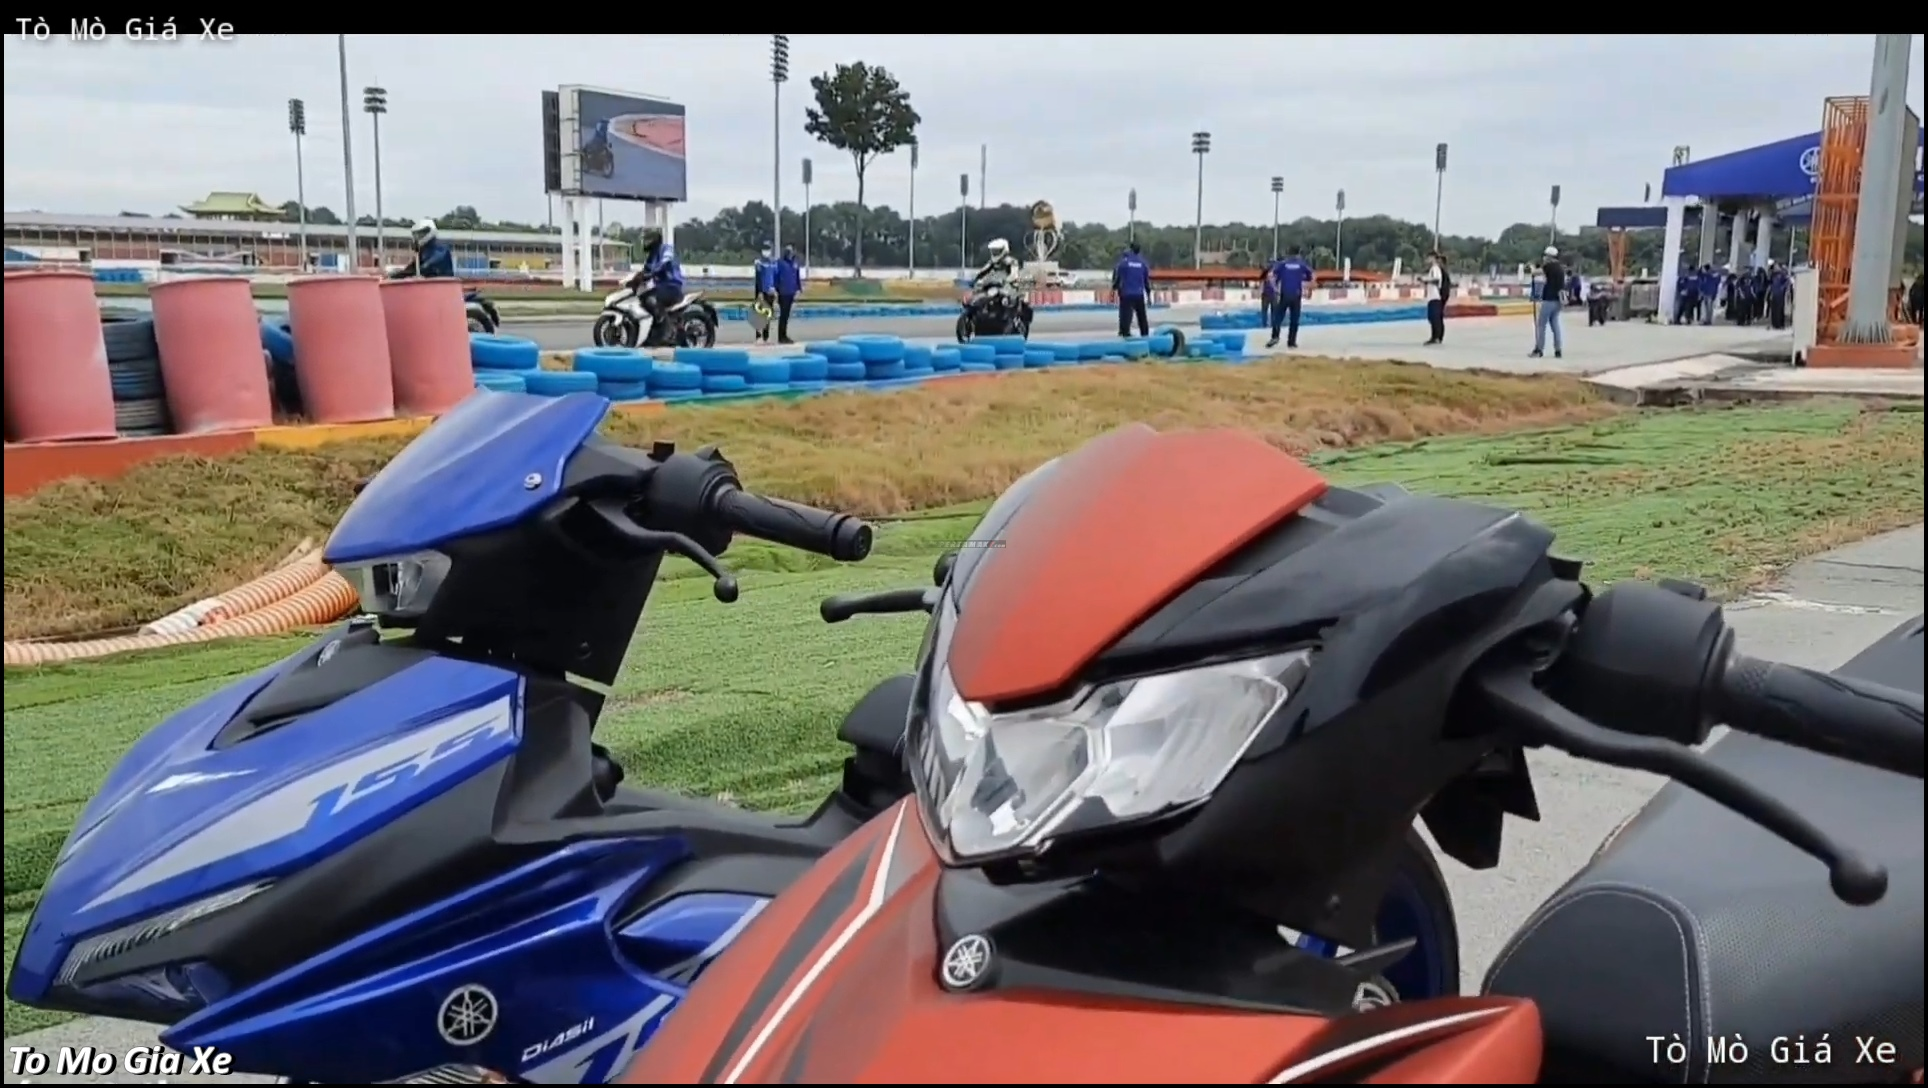 Komparasi Yamaha MX KING 155 Versus MX KING 150